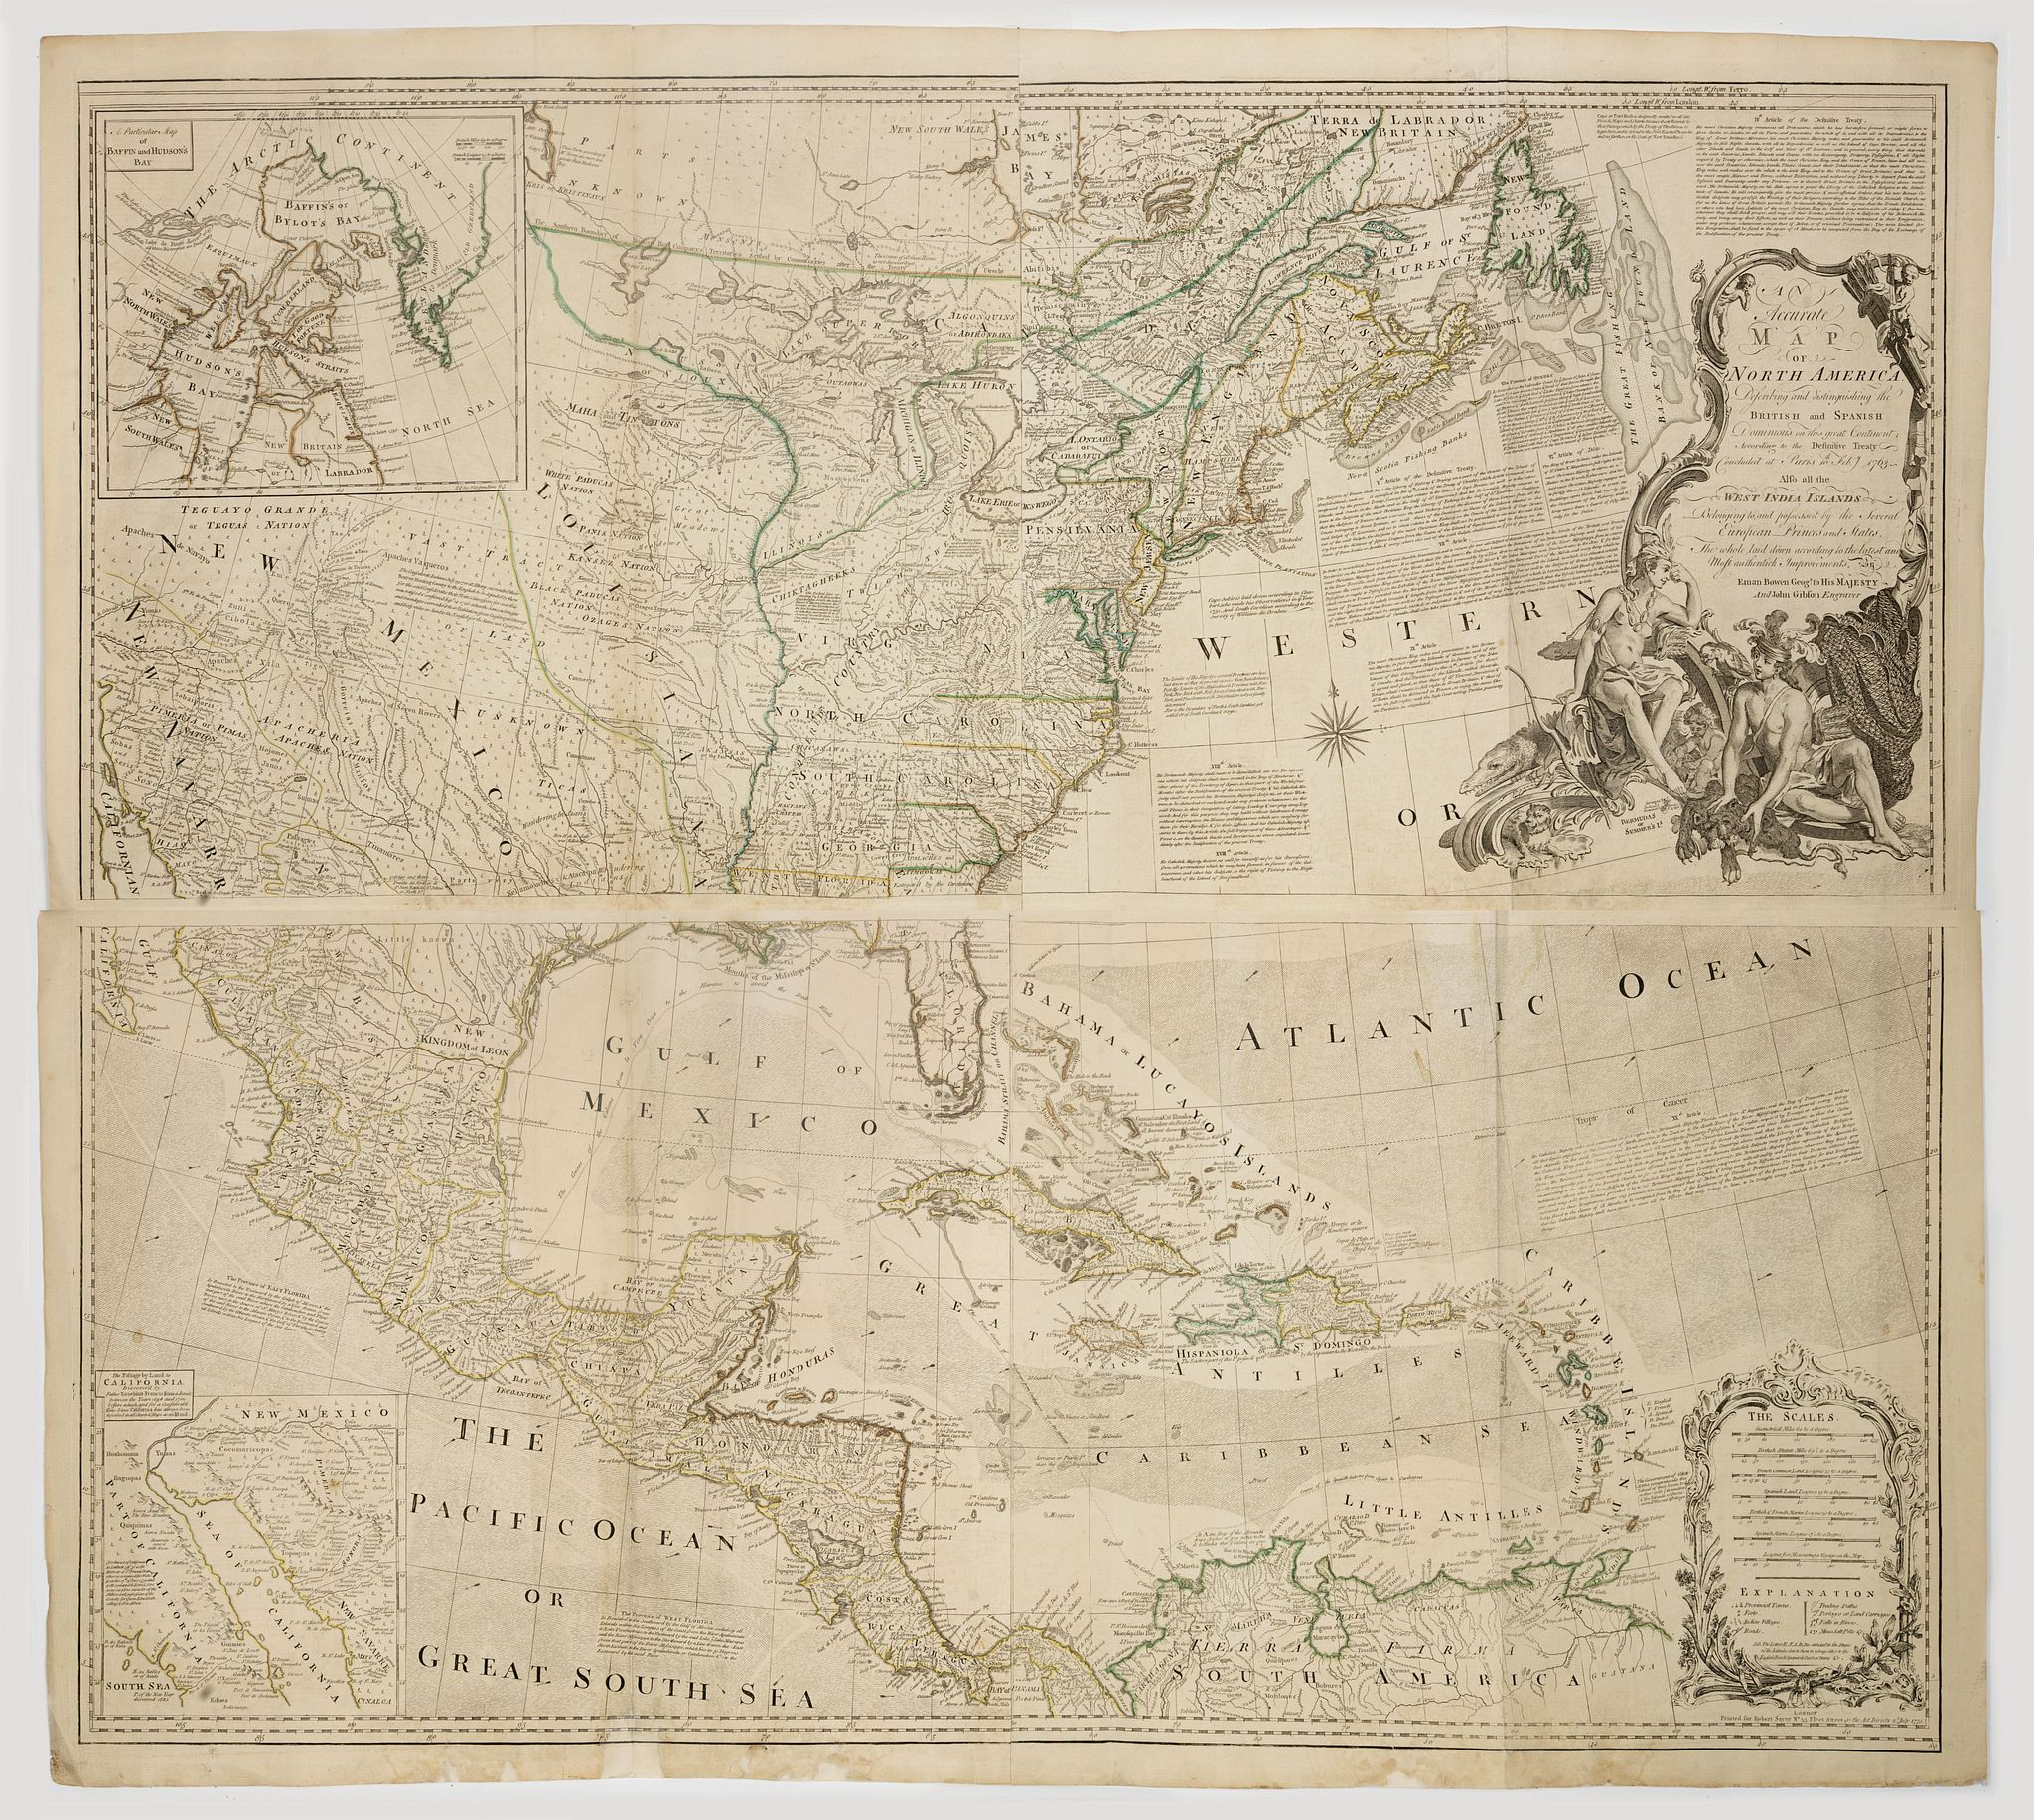 BOWEN, E.,  An Accurate Map of North America. Describing and Distinguishing the British and Spanish Dominions on this Great Continent. According to the Definitive Treaty Concluded at Paris 10th Feb. 1763., antique map, old maps